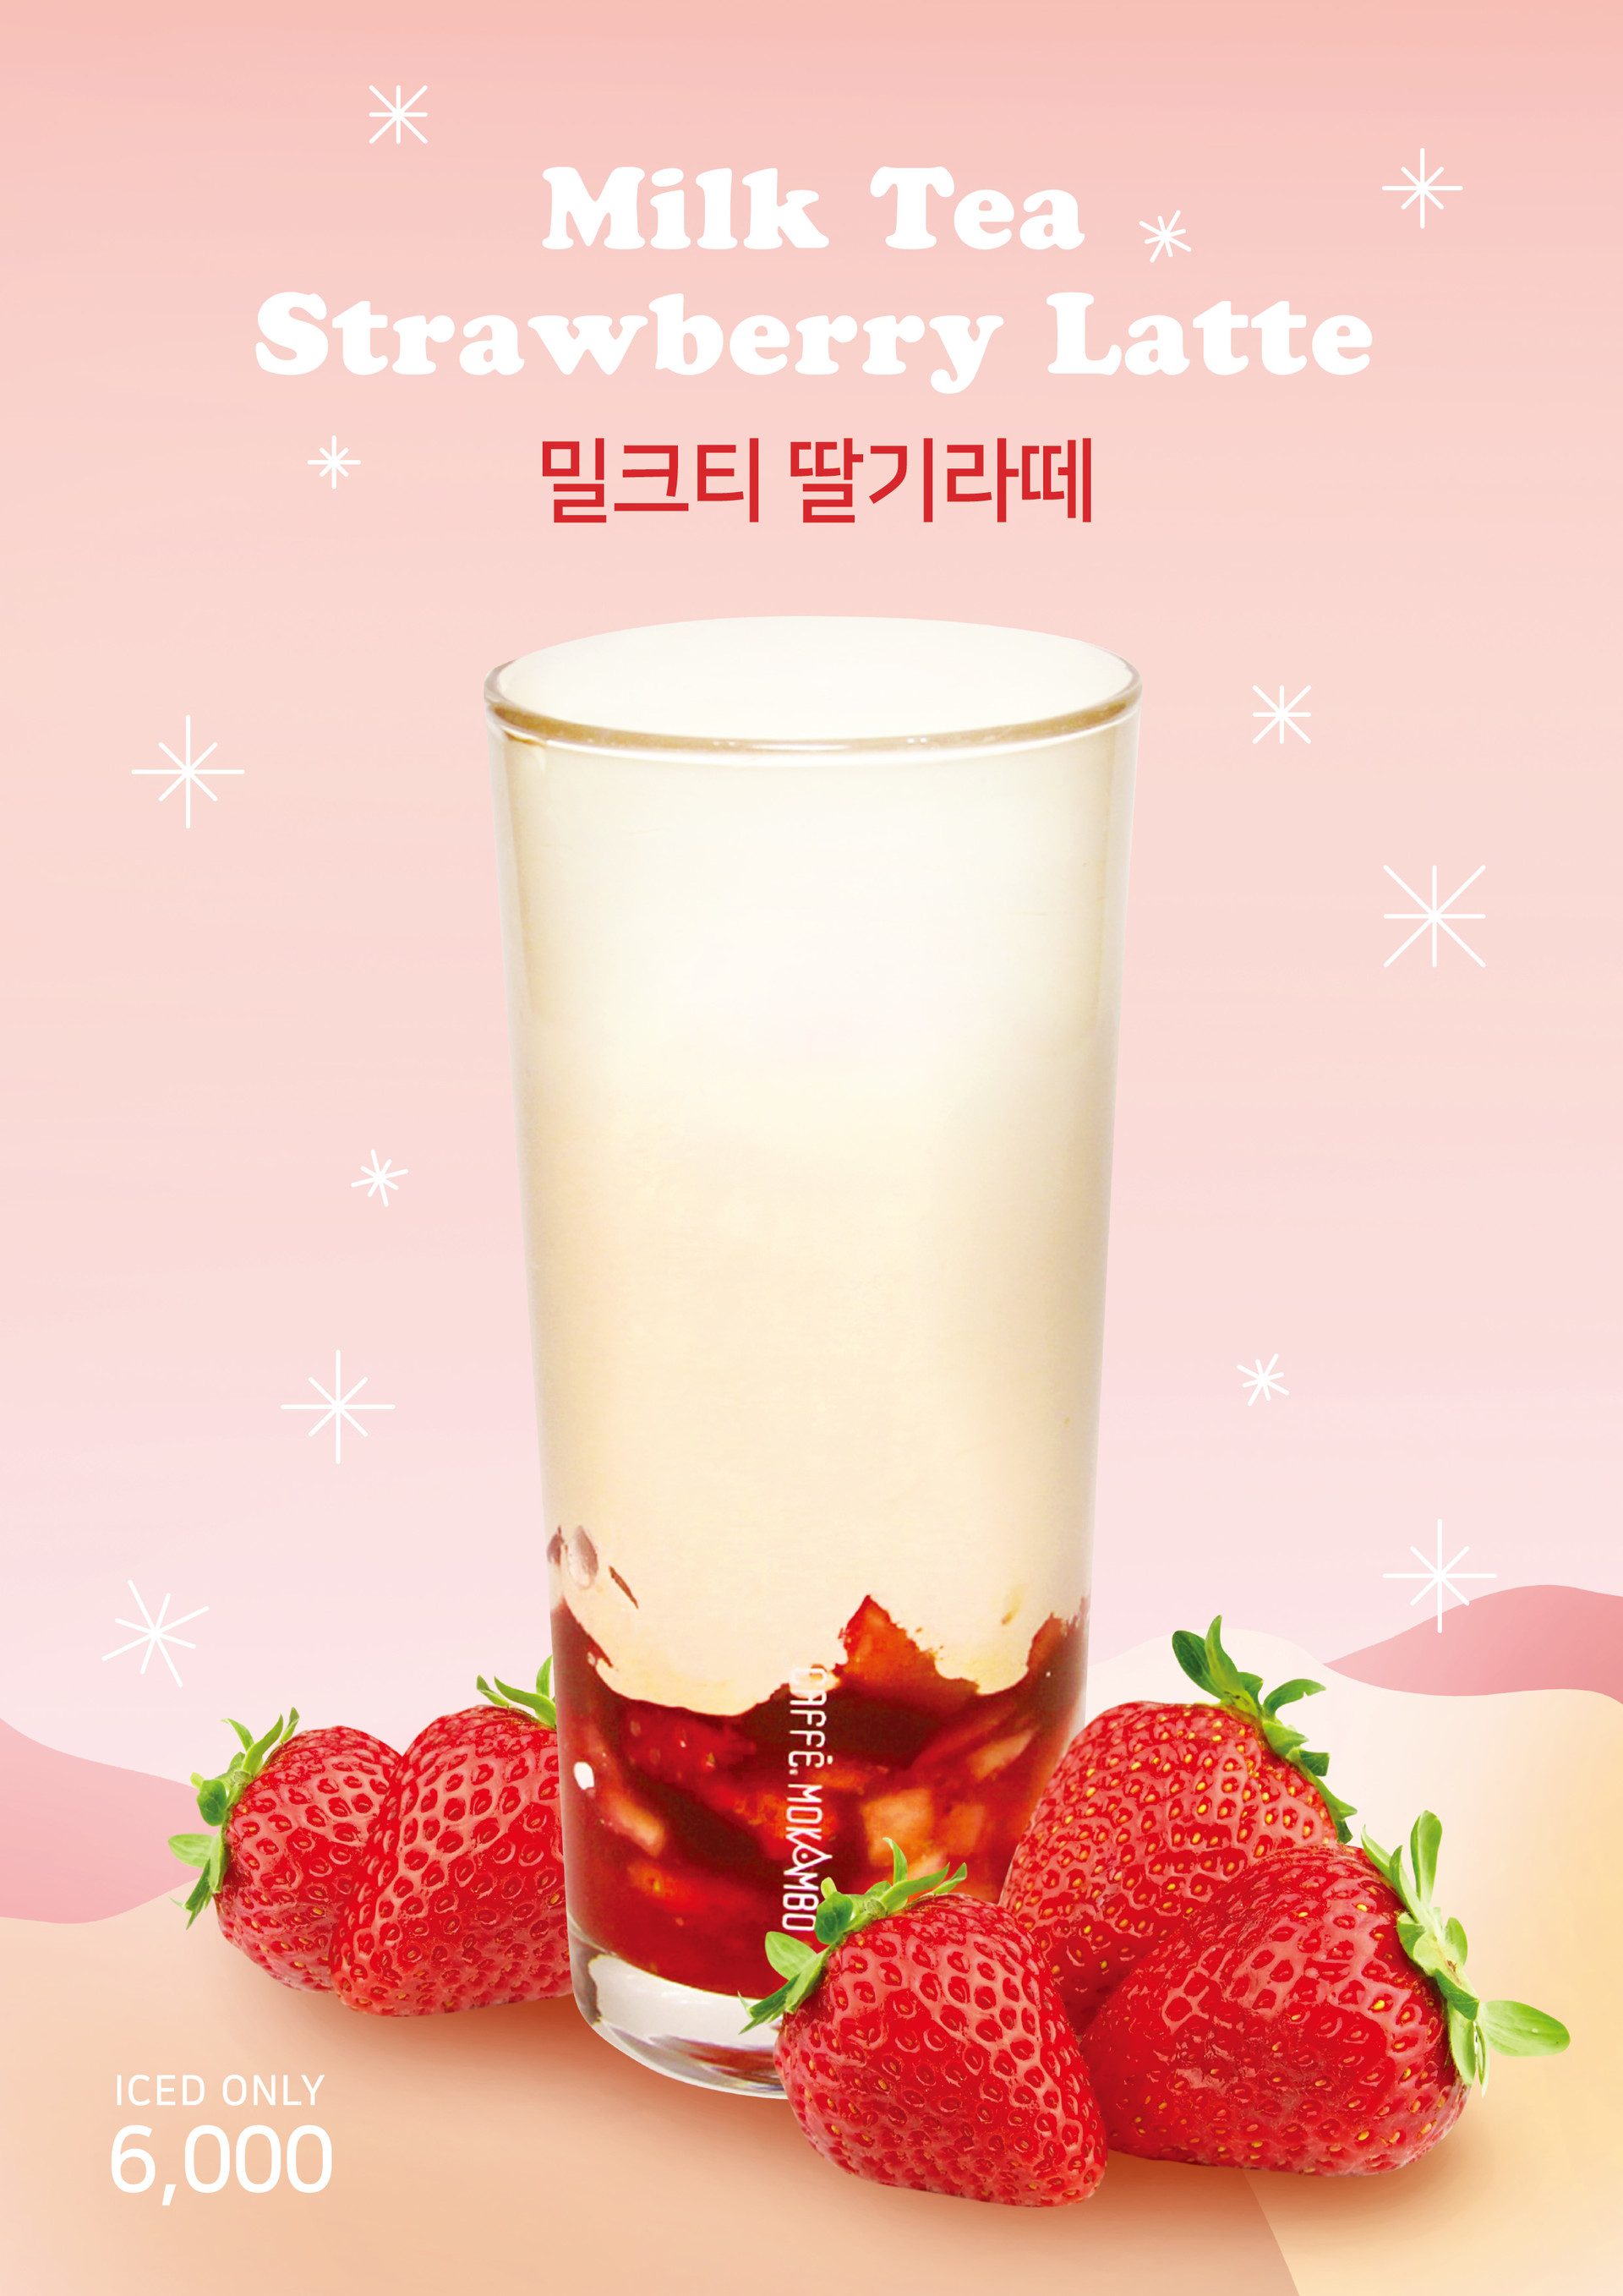 <strong>밀크티 딸기라떼</strong><br>Milk Tea Strawberry Latte